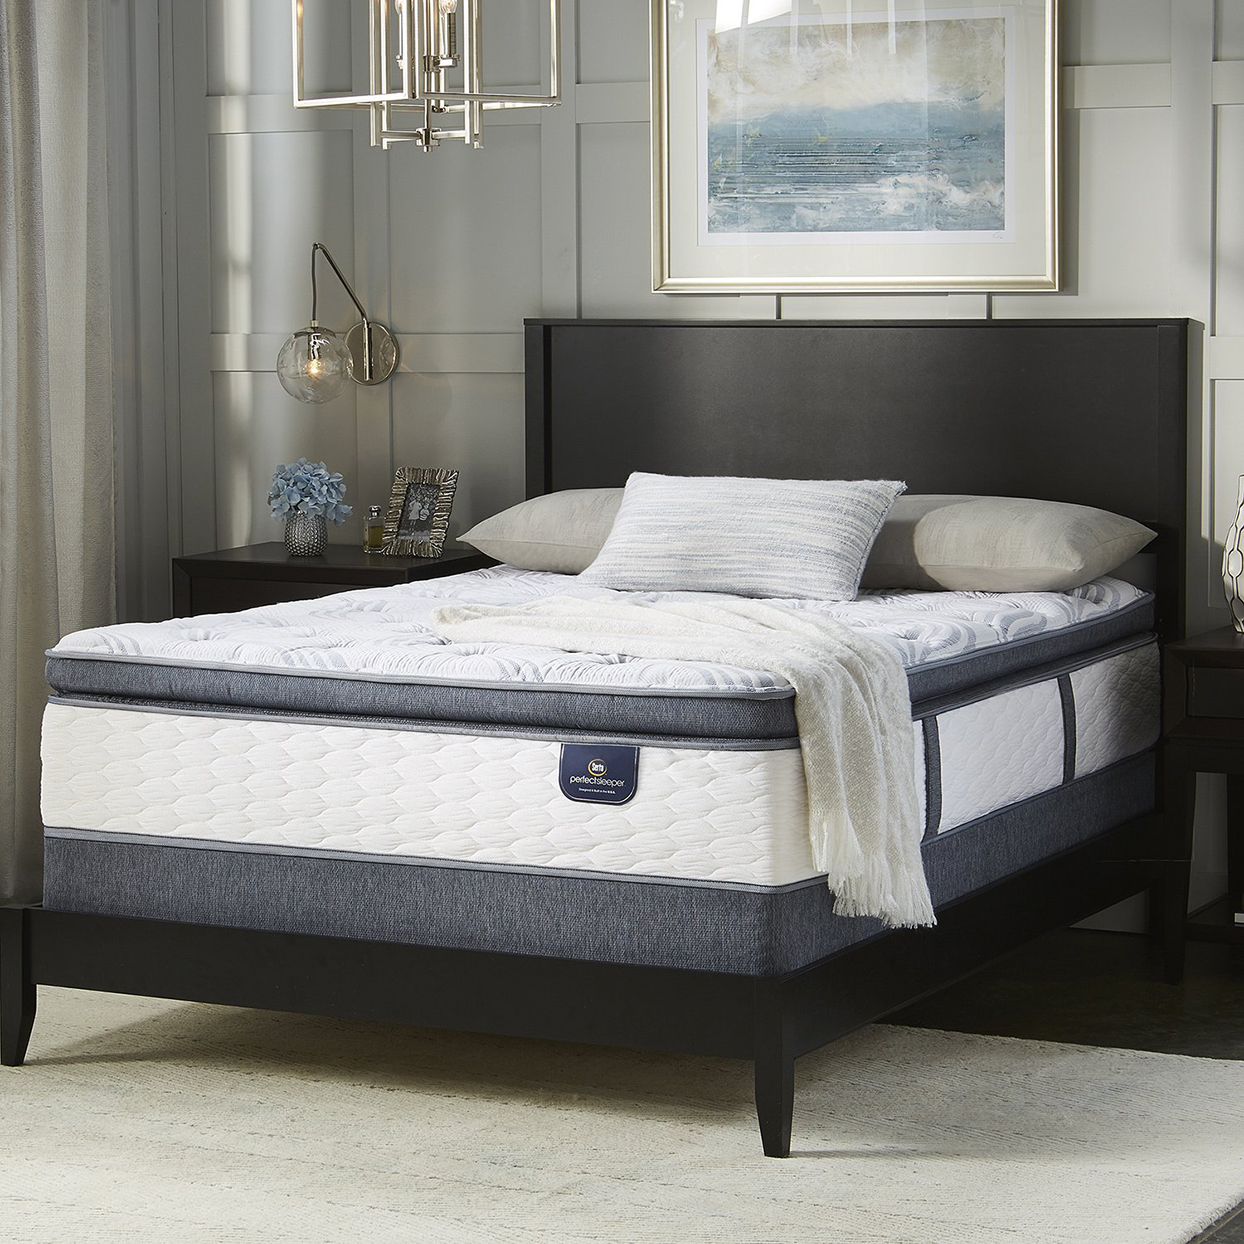 Mattress from Overstock with dark gray edging and white tufted sides and top